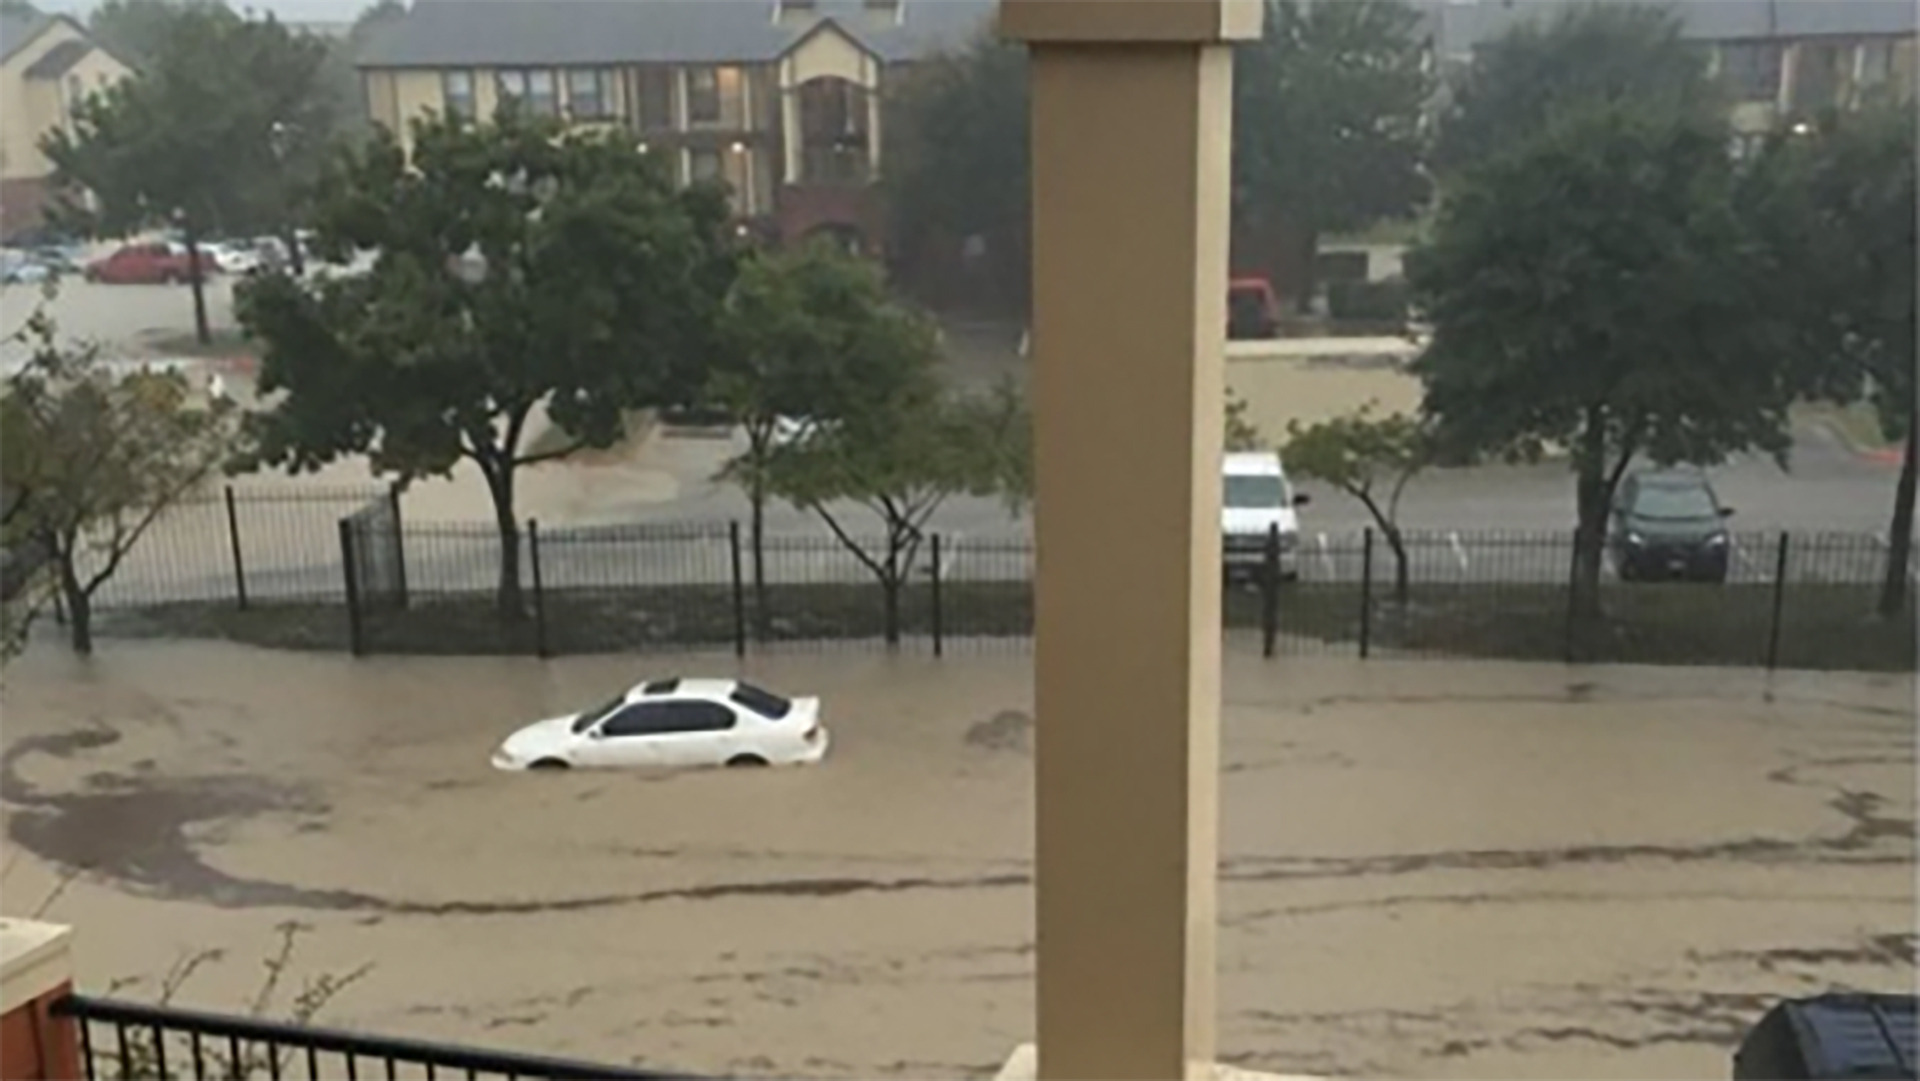 an overview of the flash flooding in texas Greg abbott says the damage caused by flash-flooding in central texas is absolutely devastating he stressed that communities downstream need to monitor flood levels and take seriously the threat of the ongoing storms the governor added 24 counties to his state disaster.